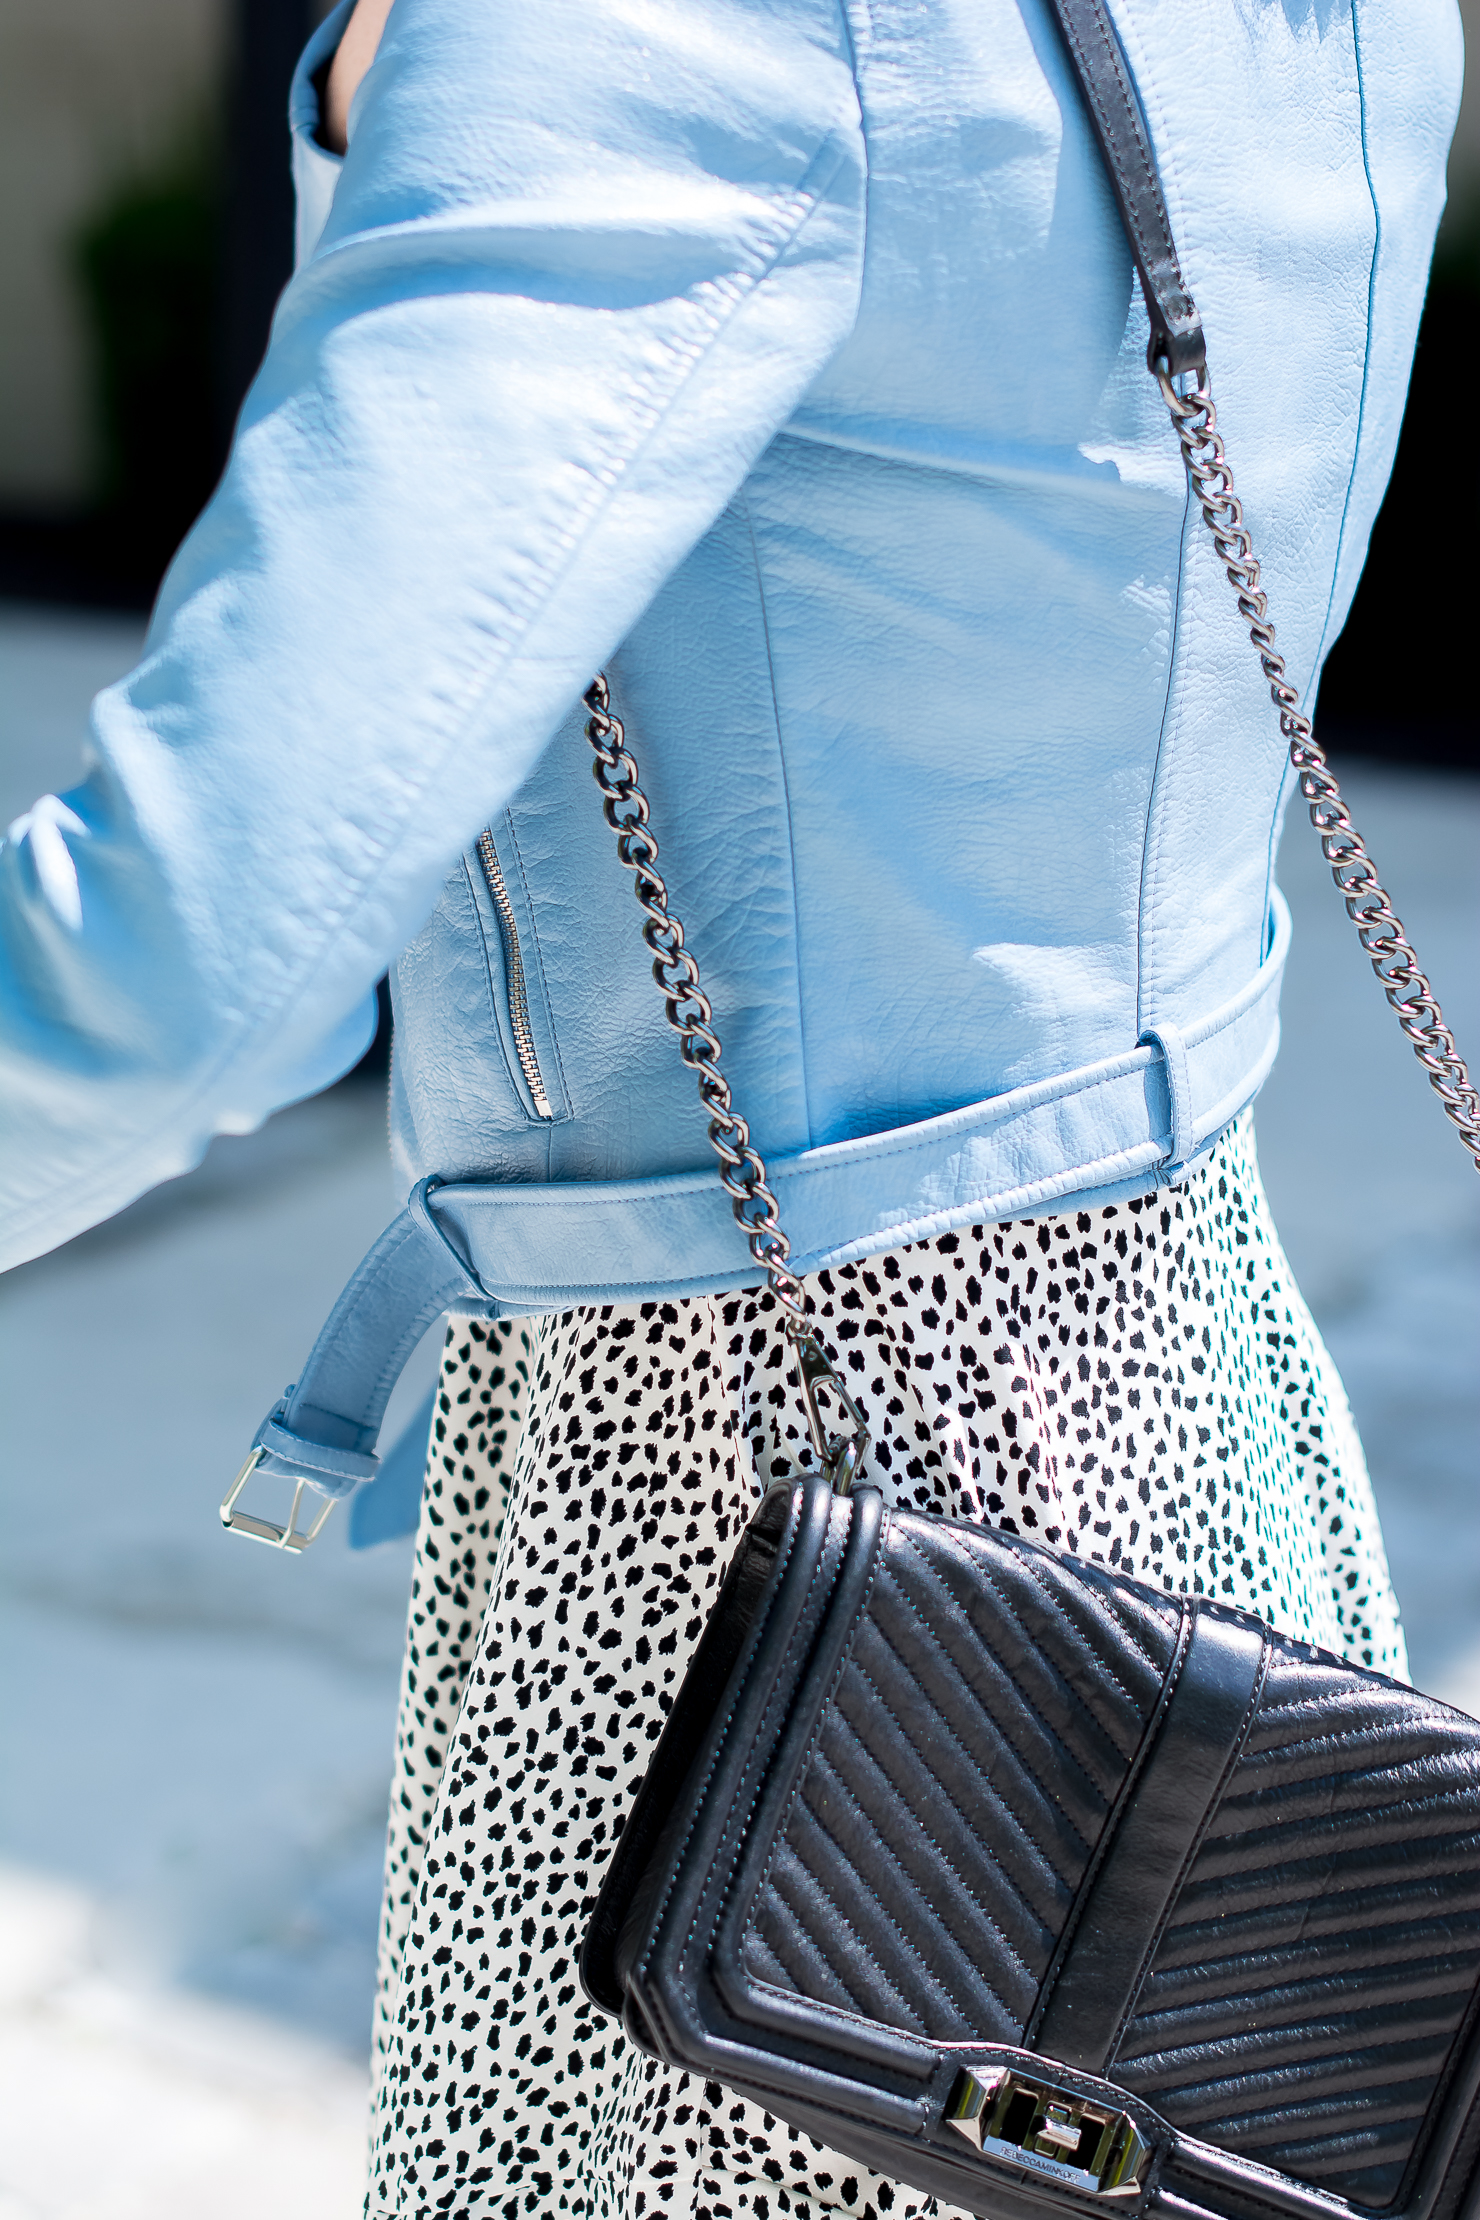 h&m-black-and-white-spotted-dress-zara-blue-faux-leather-cropped-moto-jacket-rebecca-minkoff-love-black-crossbody-city-chic-look